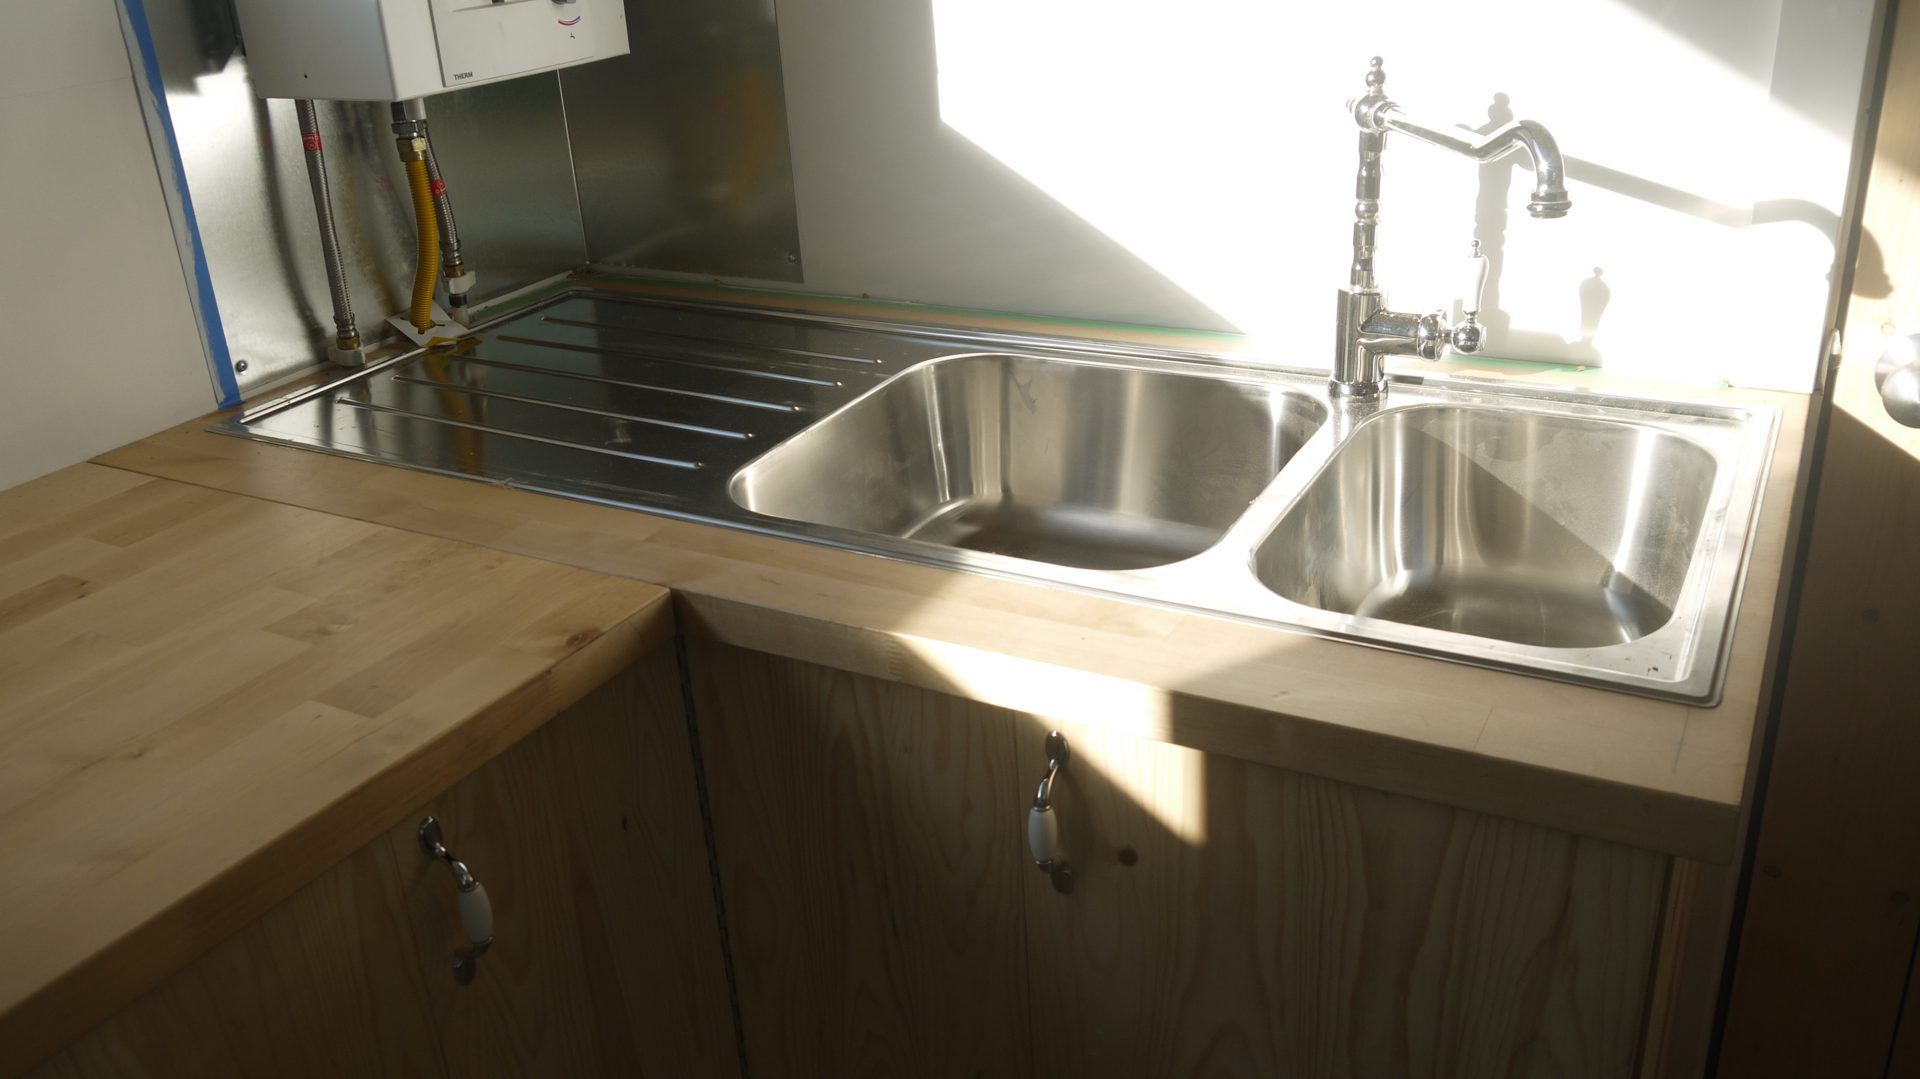 Croteau's kitchen sink and counter space.